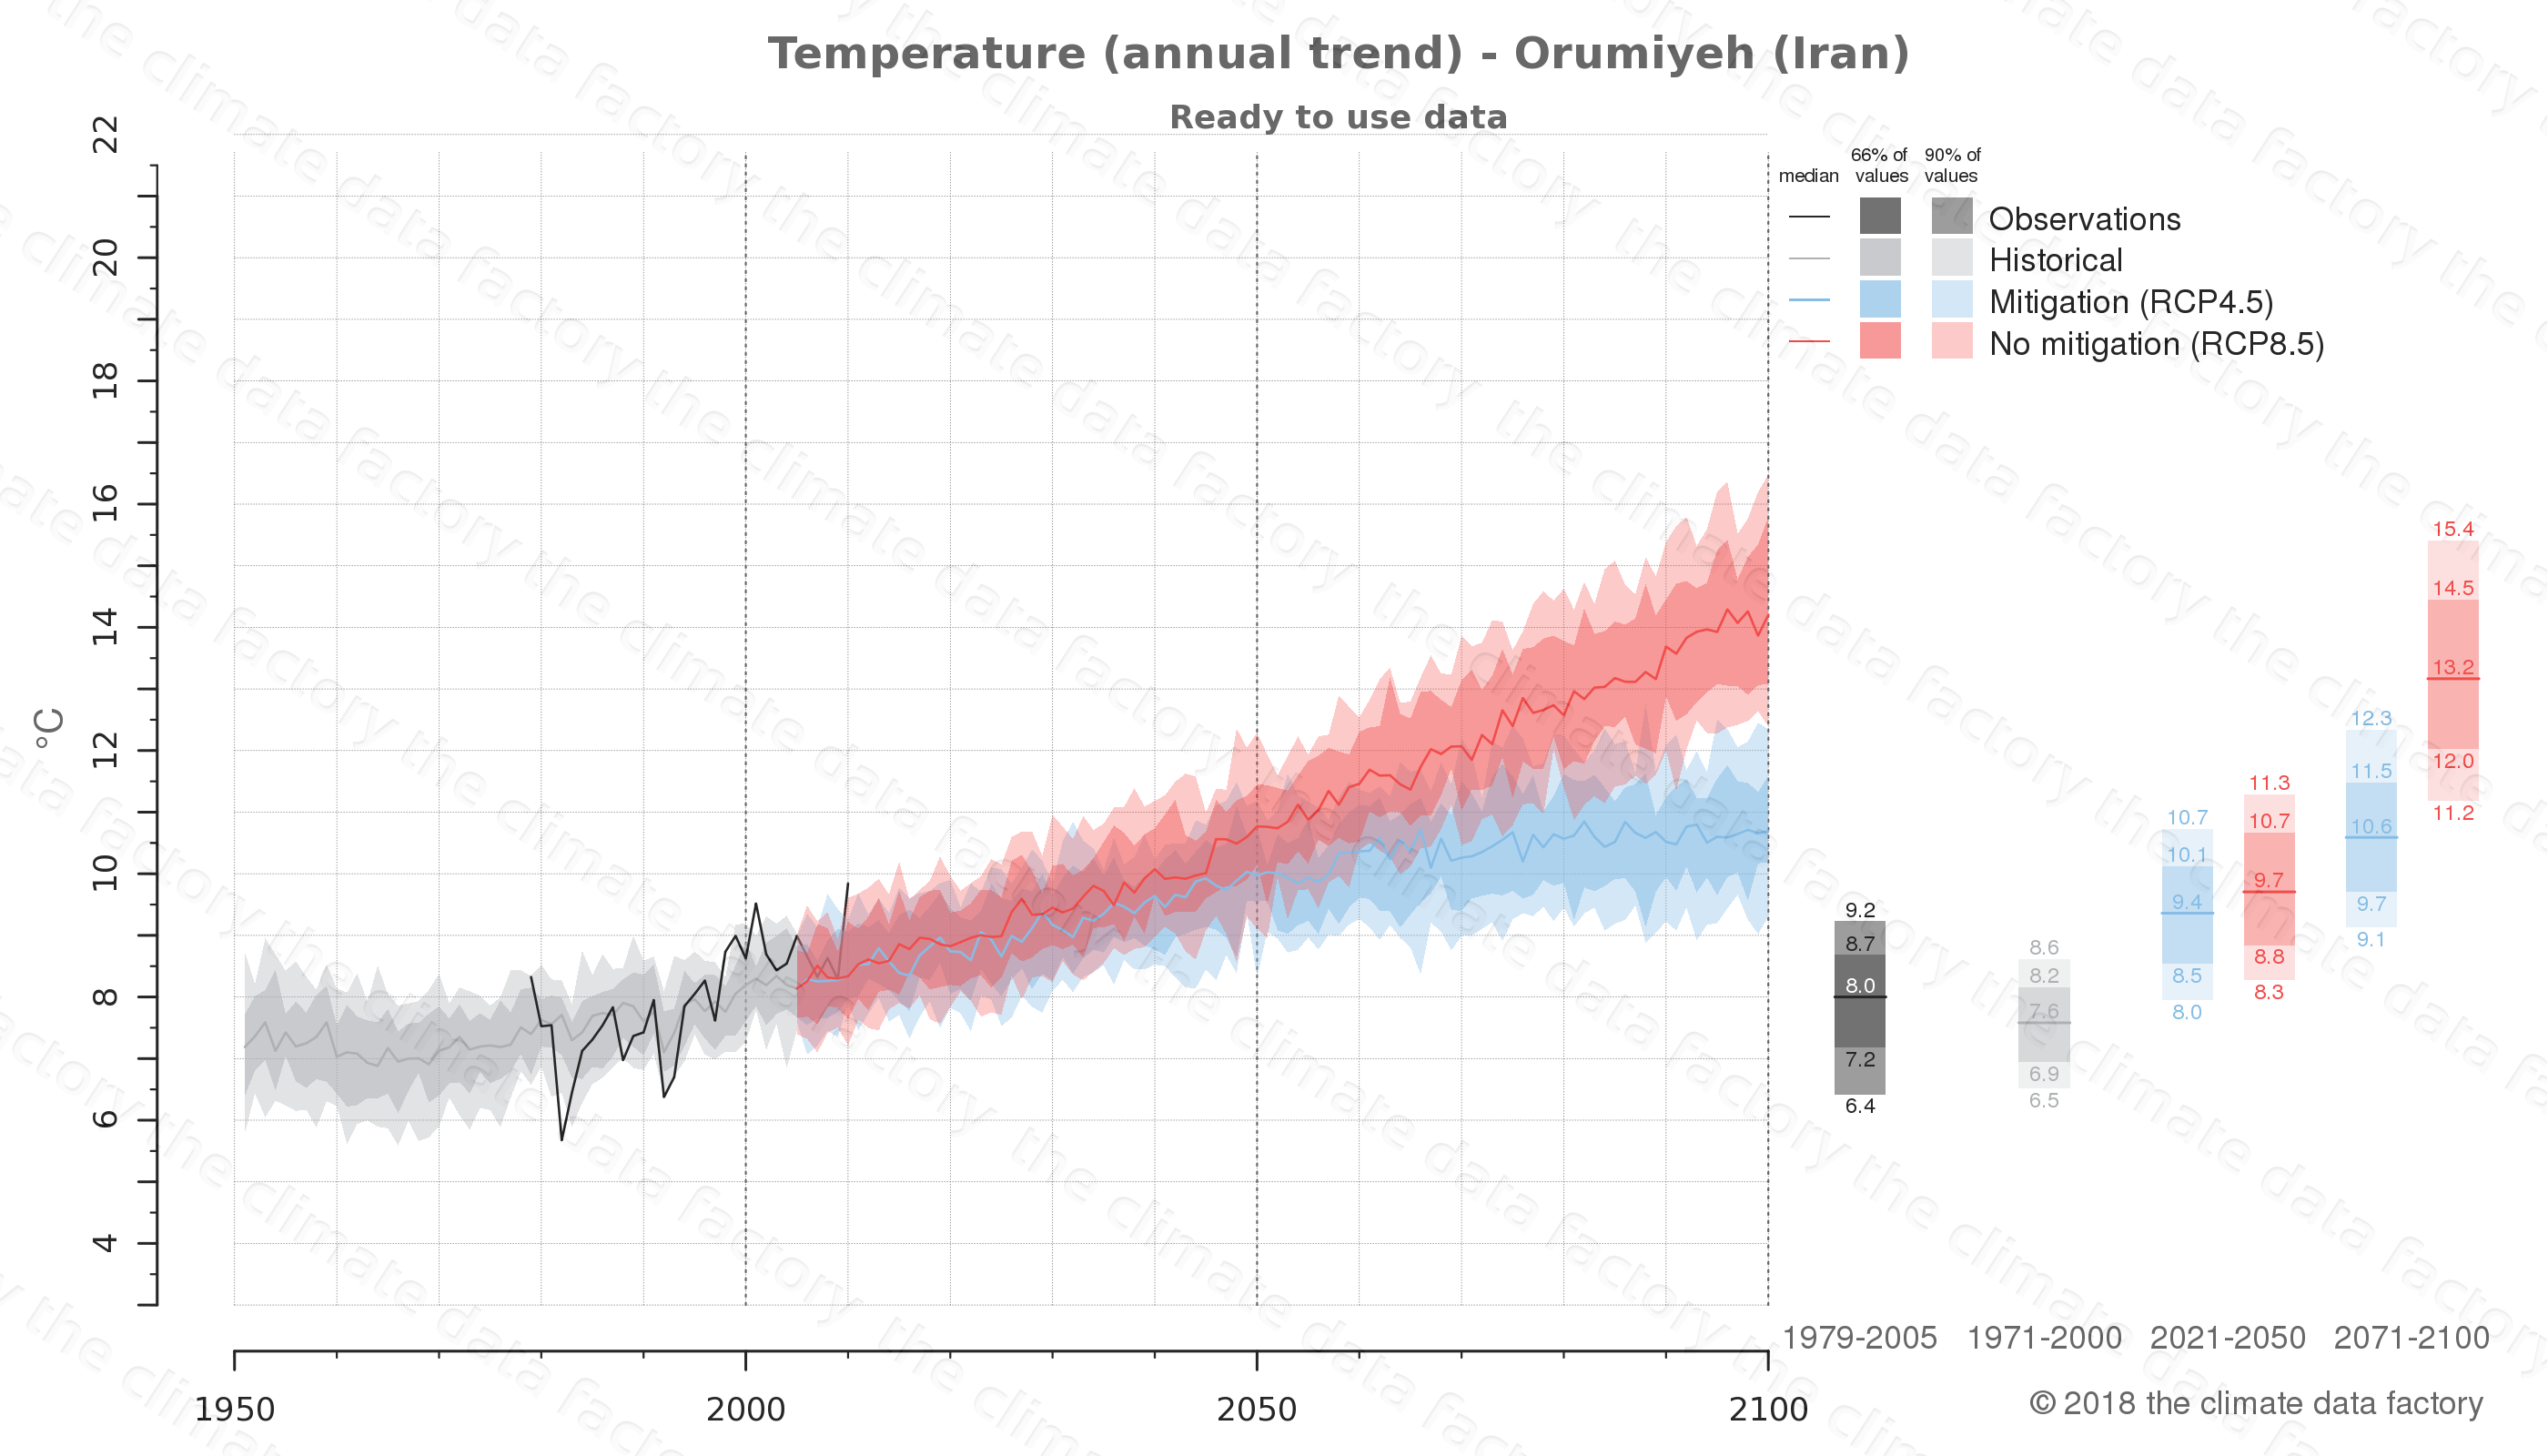 climate change data policy adaptation climate graph city data temperature orumiyeh iran